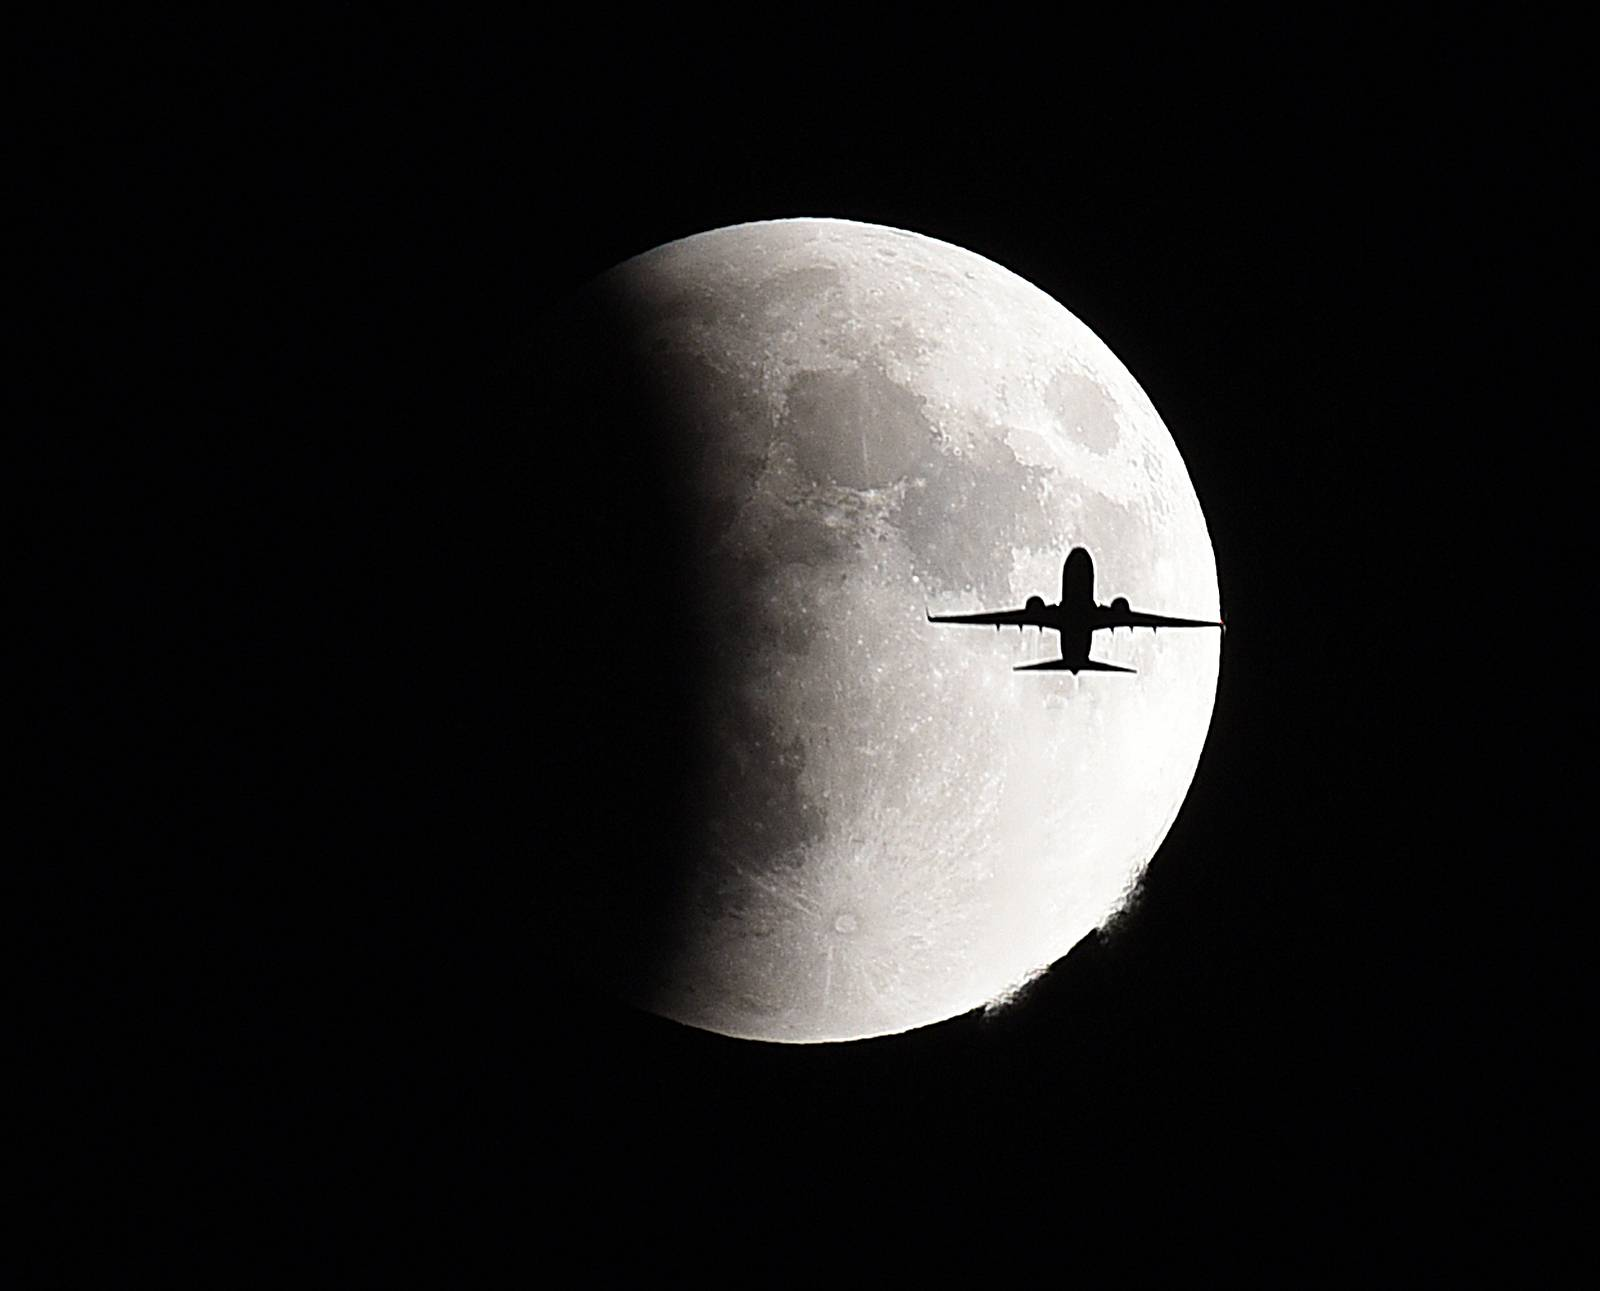 A jet flies in front of the moon during a supermoon lunar eclipse.